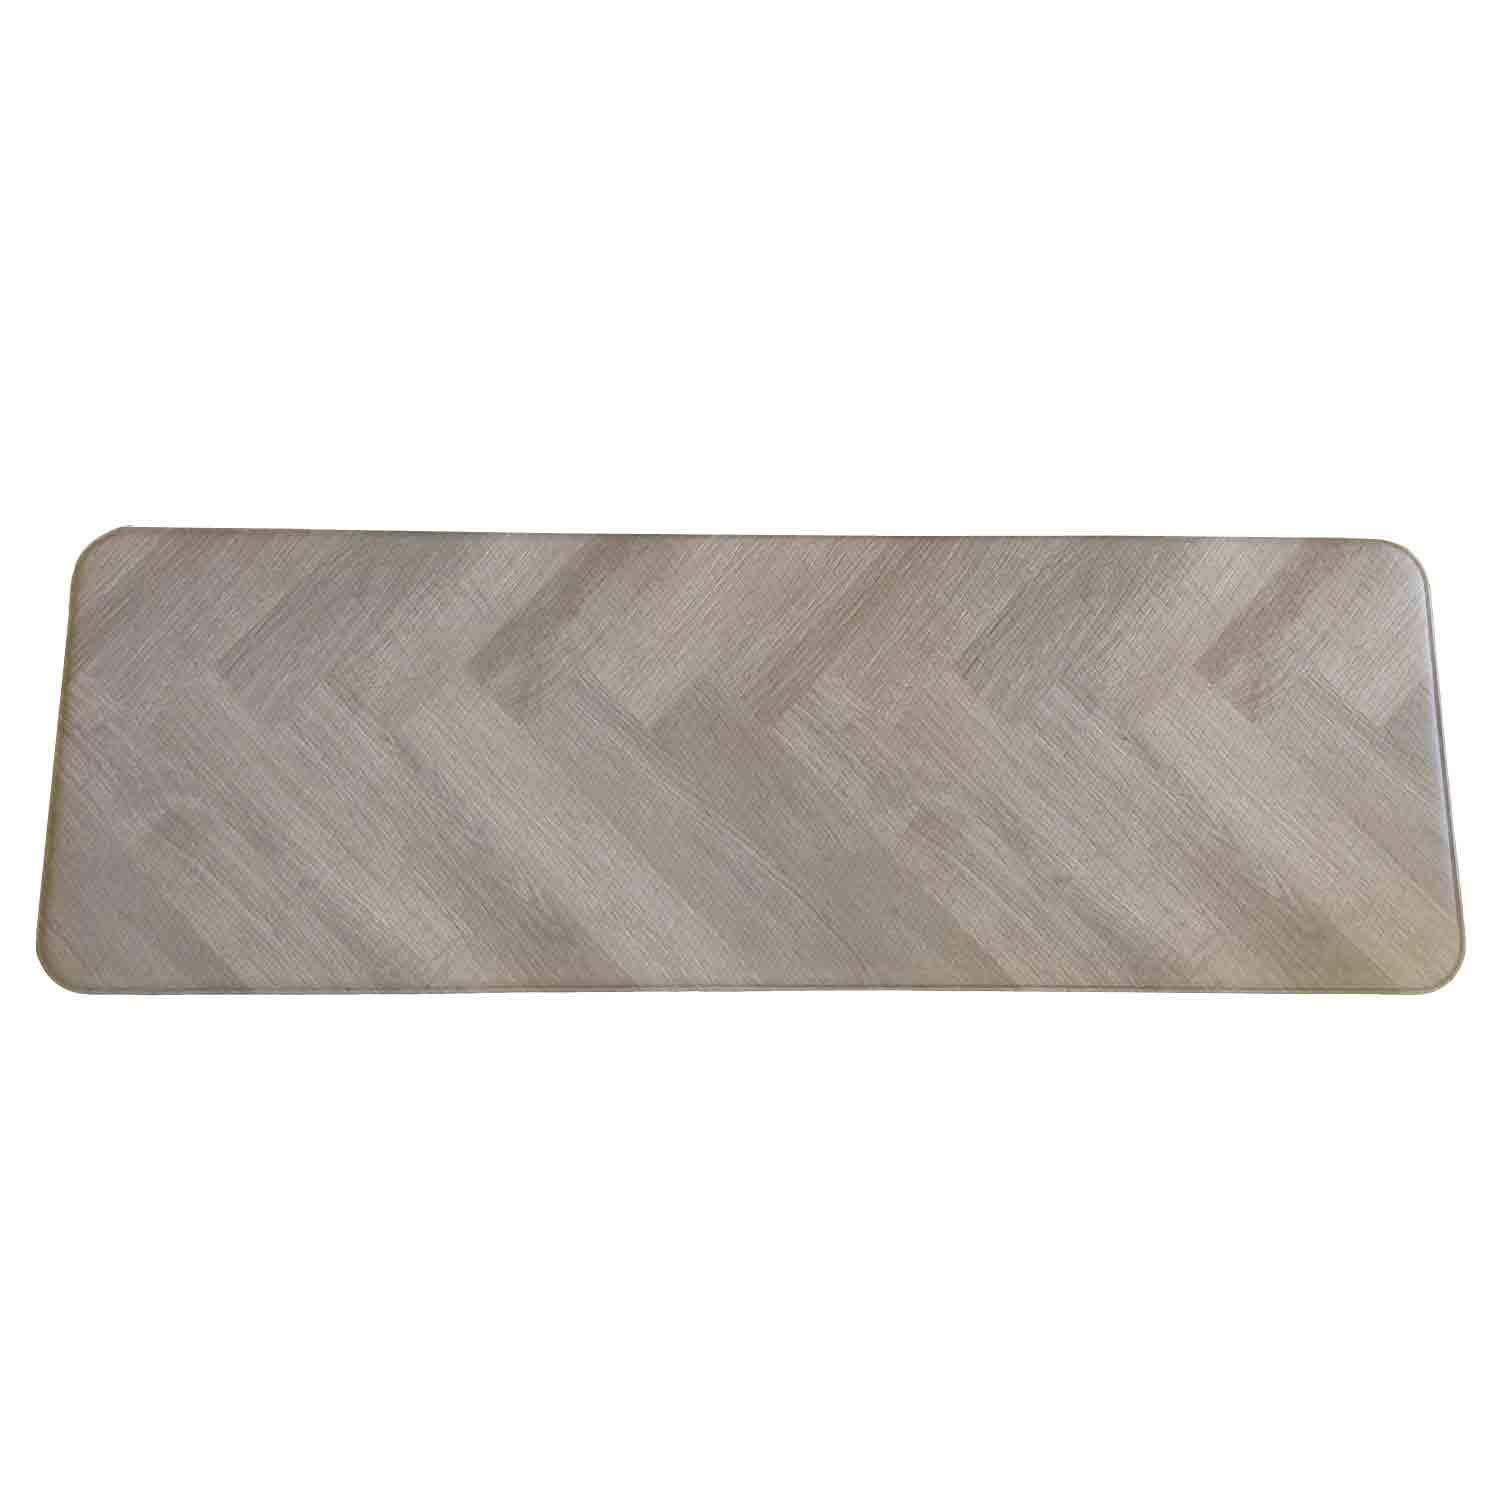 Anti Fatigue Cushion Stylish Comfort Floor Foam Kitchen and Office Mat , Waterproof, Easy to clean, Soft and Thick, Non Toxic, Reversible (Grey and Stripe, 17'' x 37'')